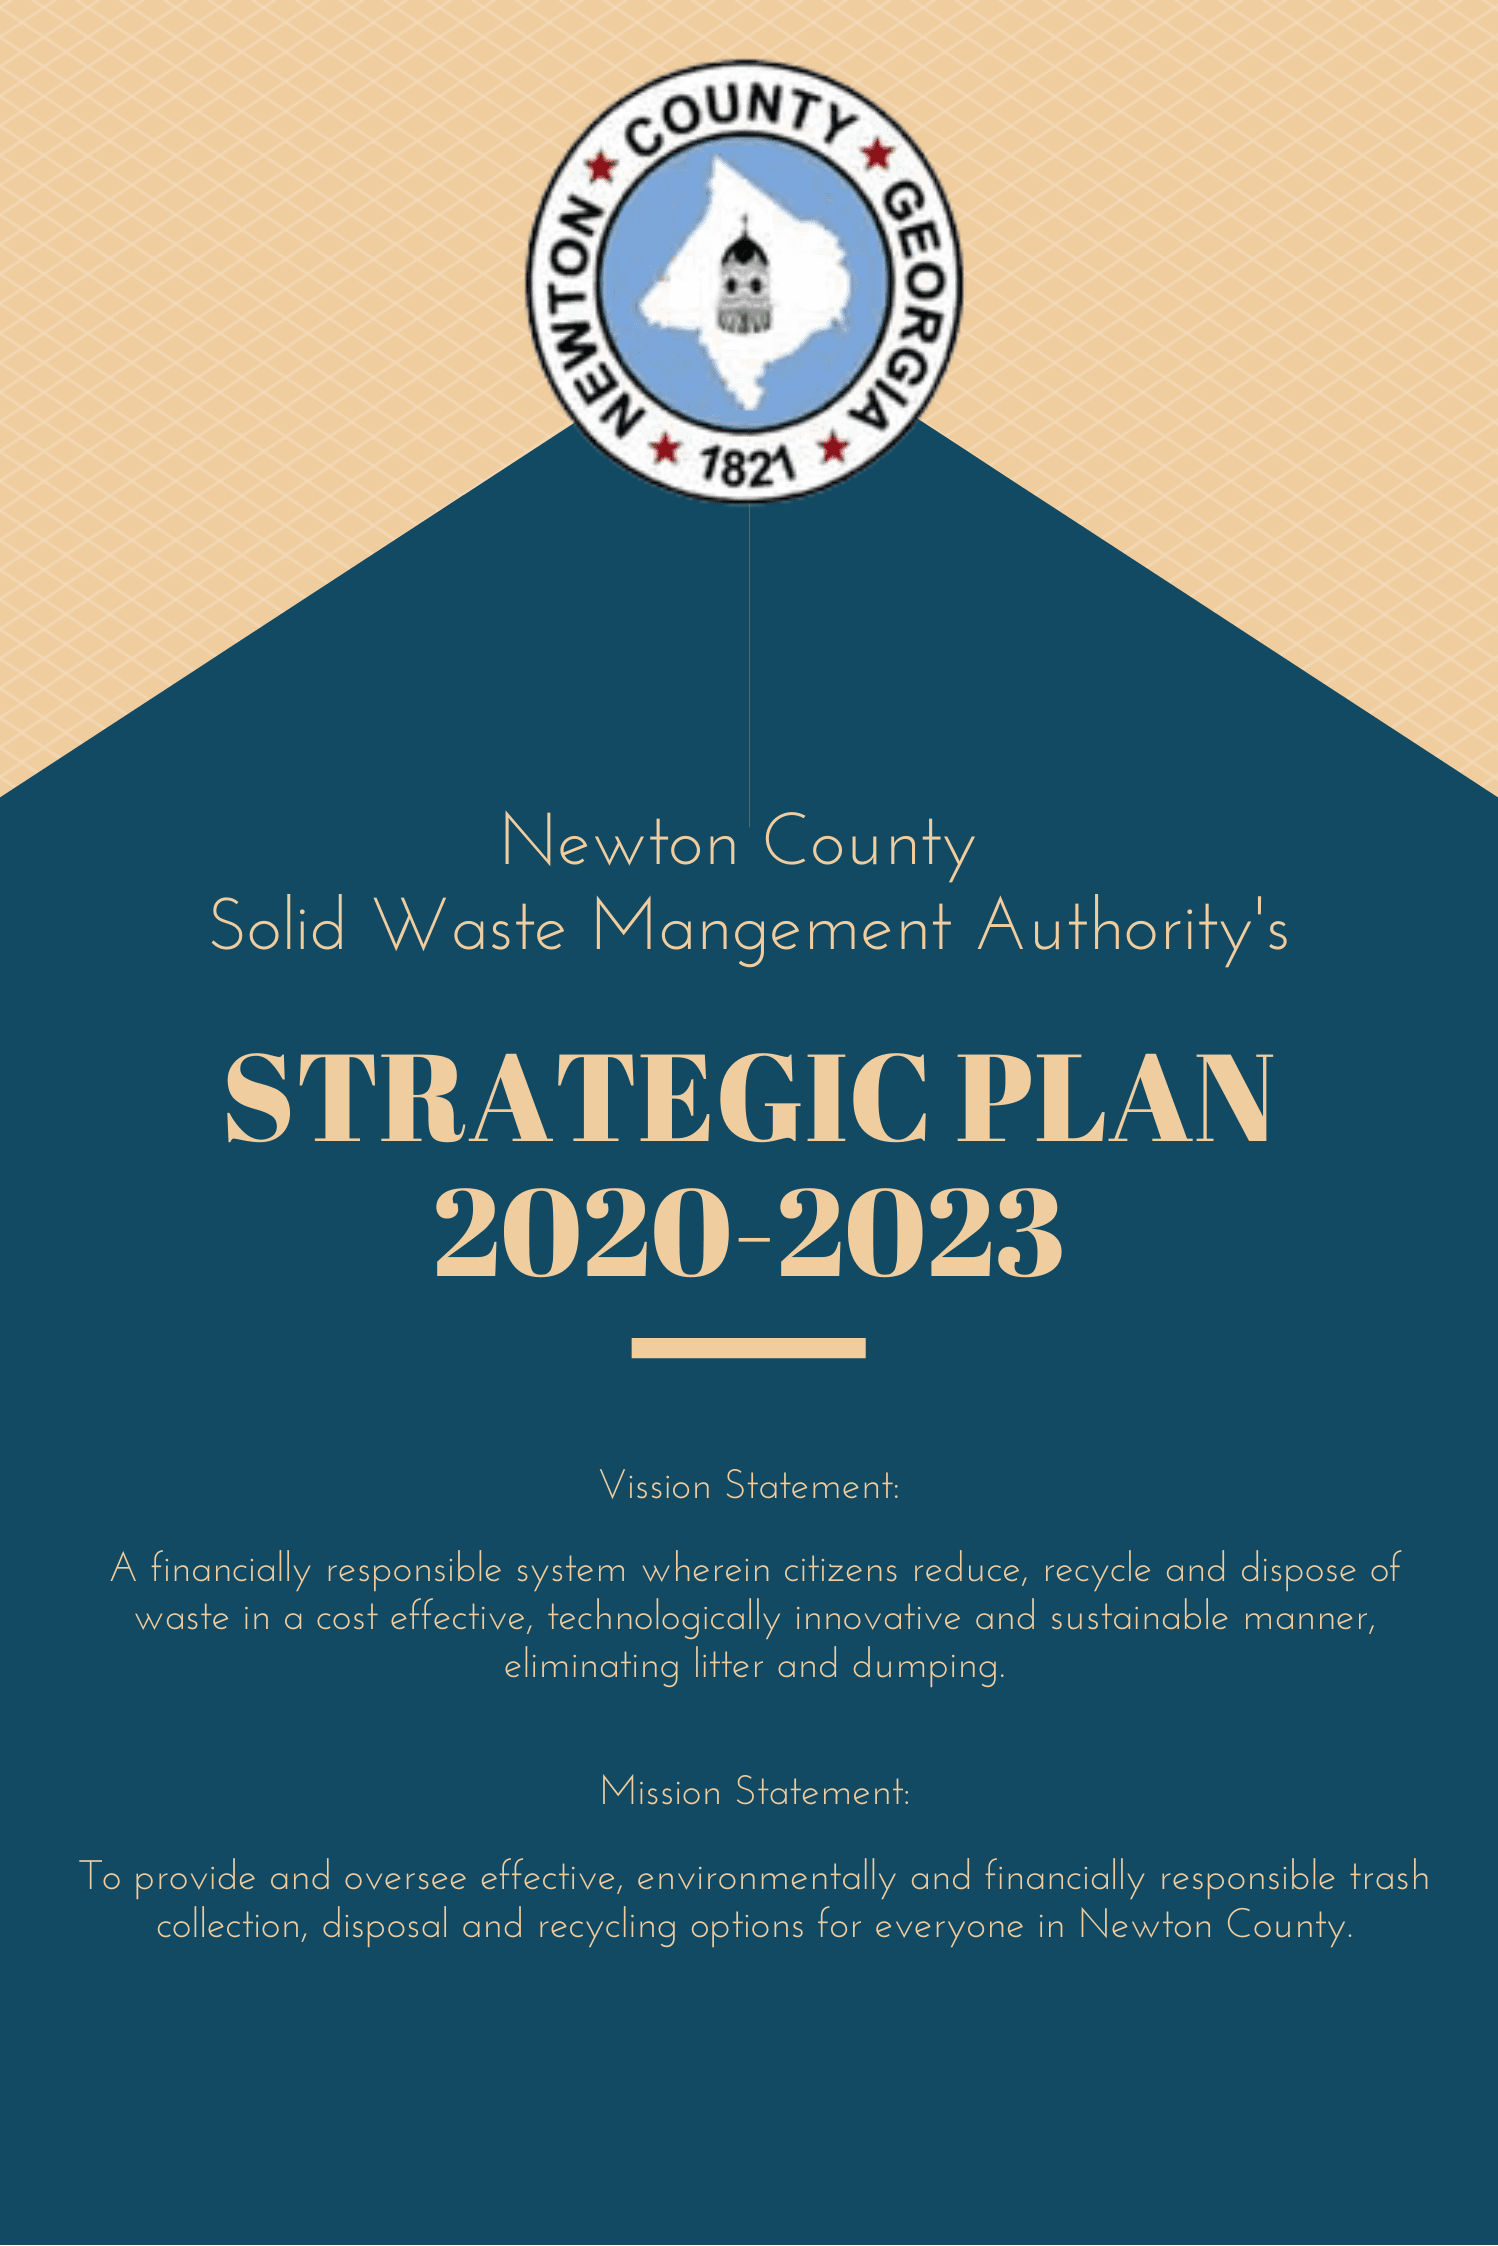 Image of swa strategic plan